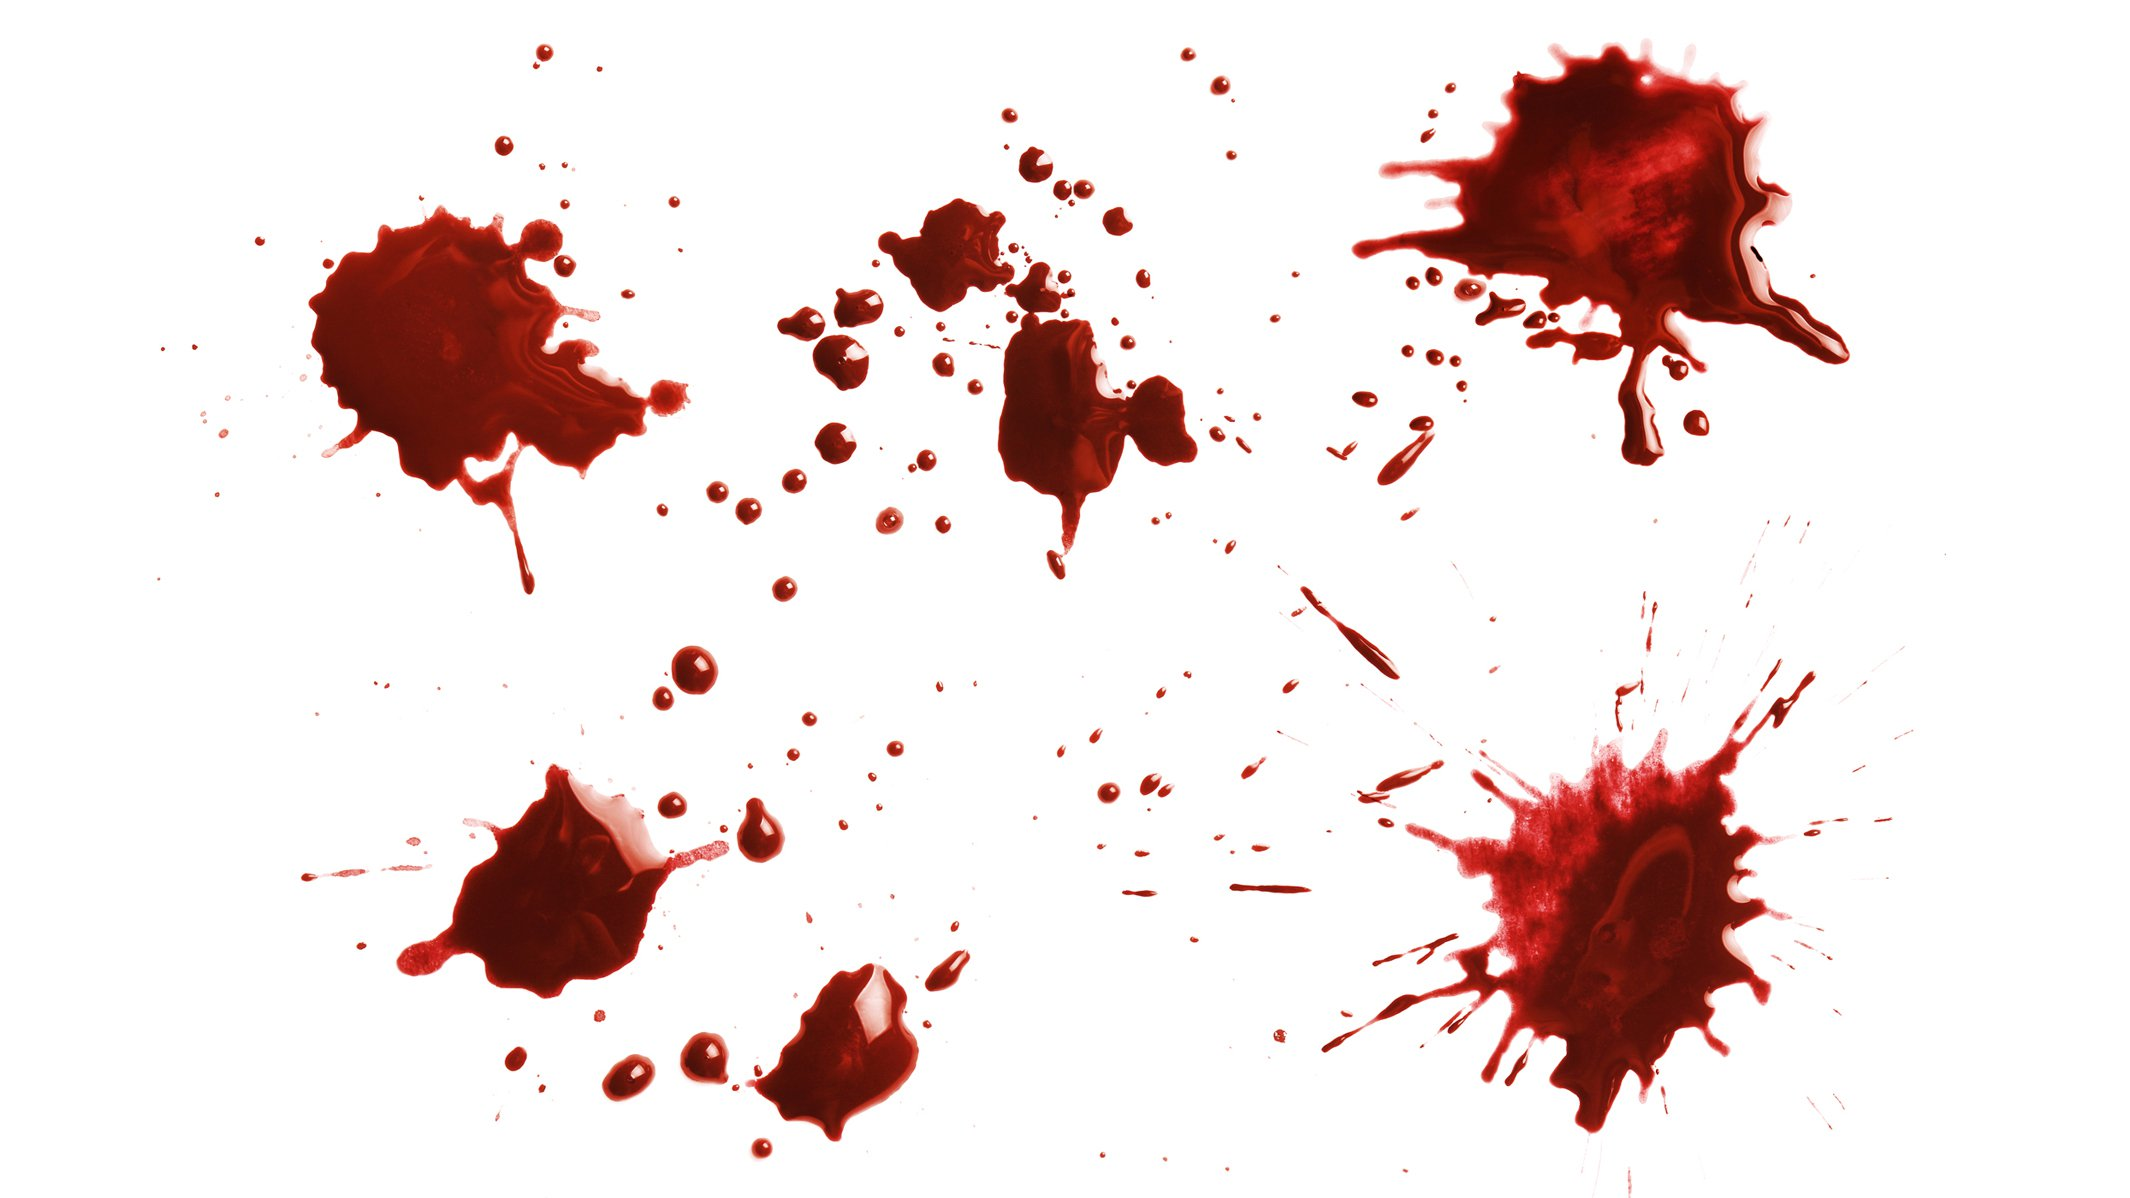 There Will Be Blood And Physics Too The Messy Science Of Bloodstain Pattern Analysis Nova Pbs Nova Pbs